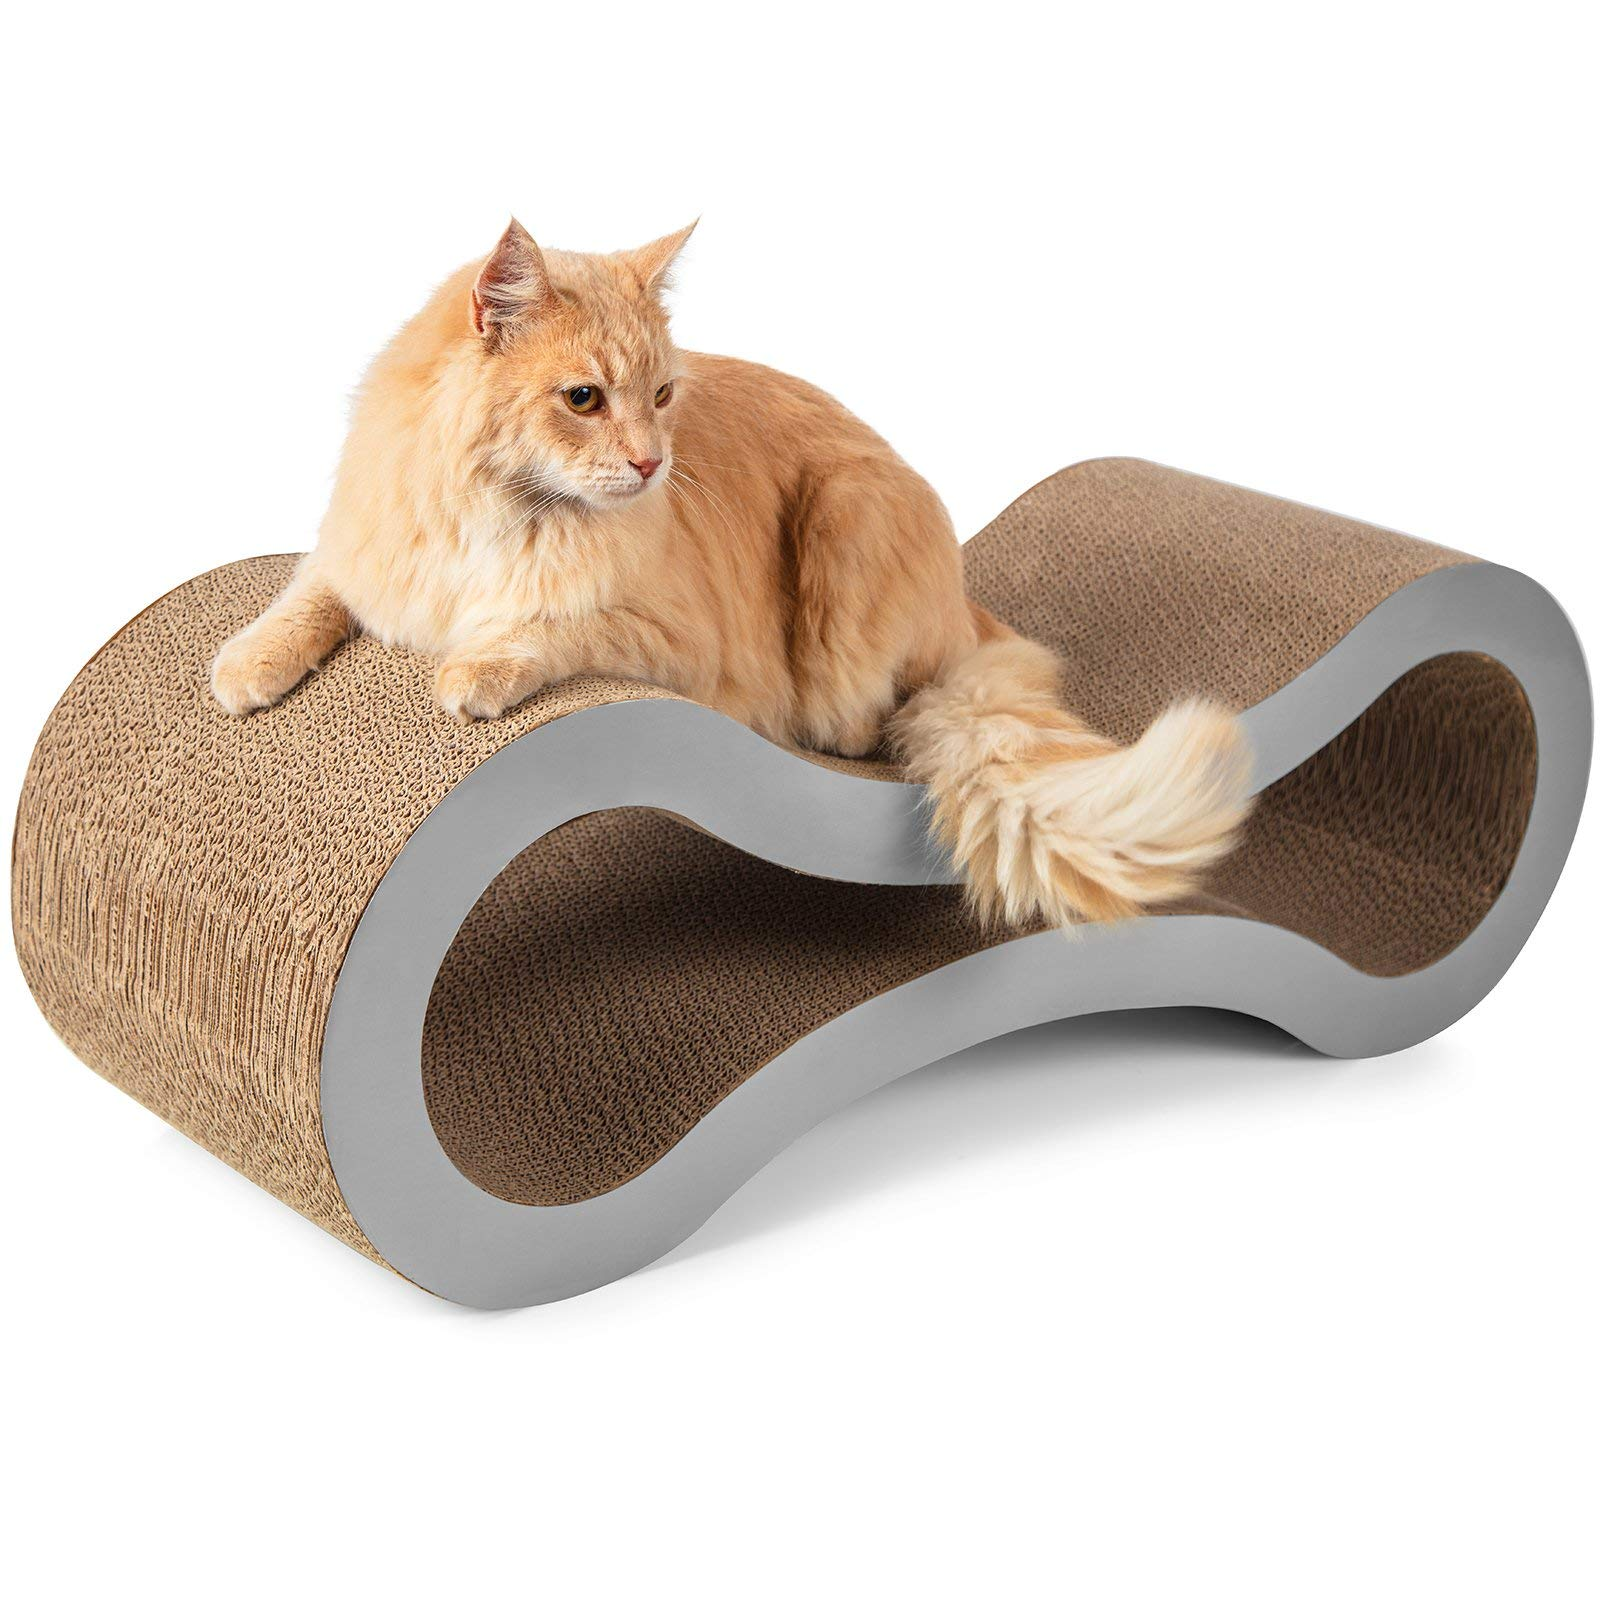 Cat Scratcher Cardboard Scratching Post - Scratch Lounge Furniture Pad Lounger with Catnip Best For Small Medium or Large Cats Posts and Scratchers Board Pads Stand Indoor Toys Pet Supplies for Houses by Paws & Pals